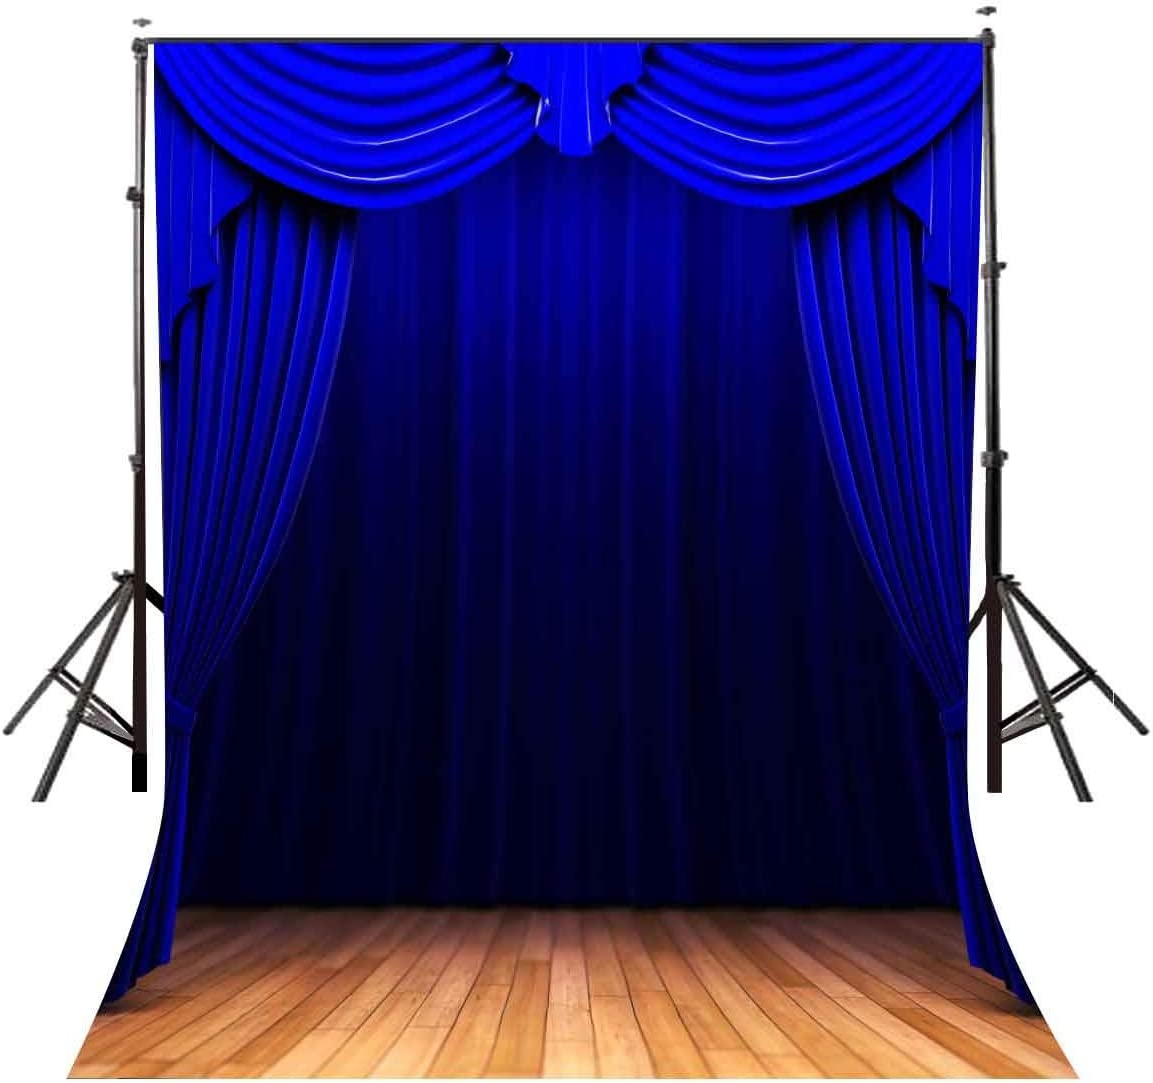 GoEoo 5x7ft Polyster Backdrop The Blue Stage Curtain Wood Floor Photography Background Photo Studio Props Wall LY073